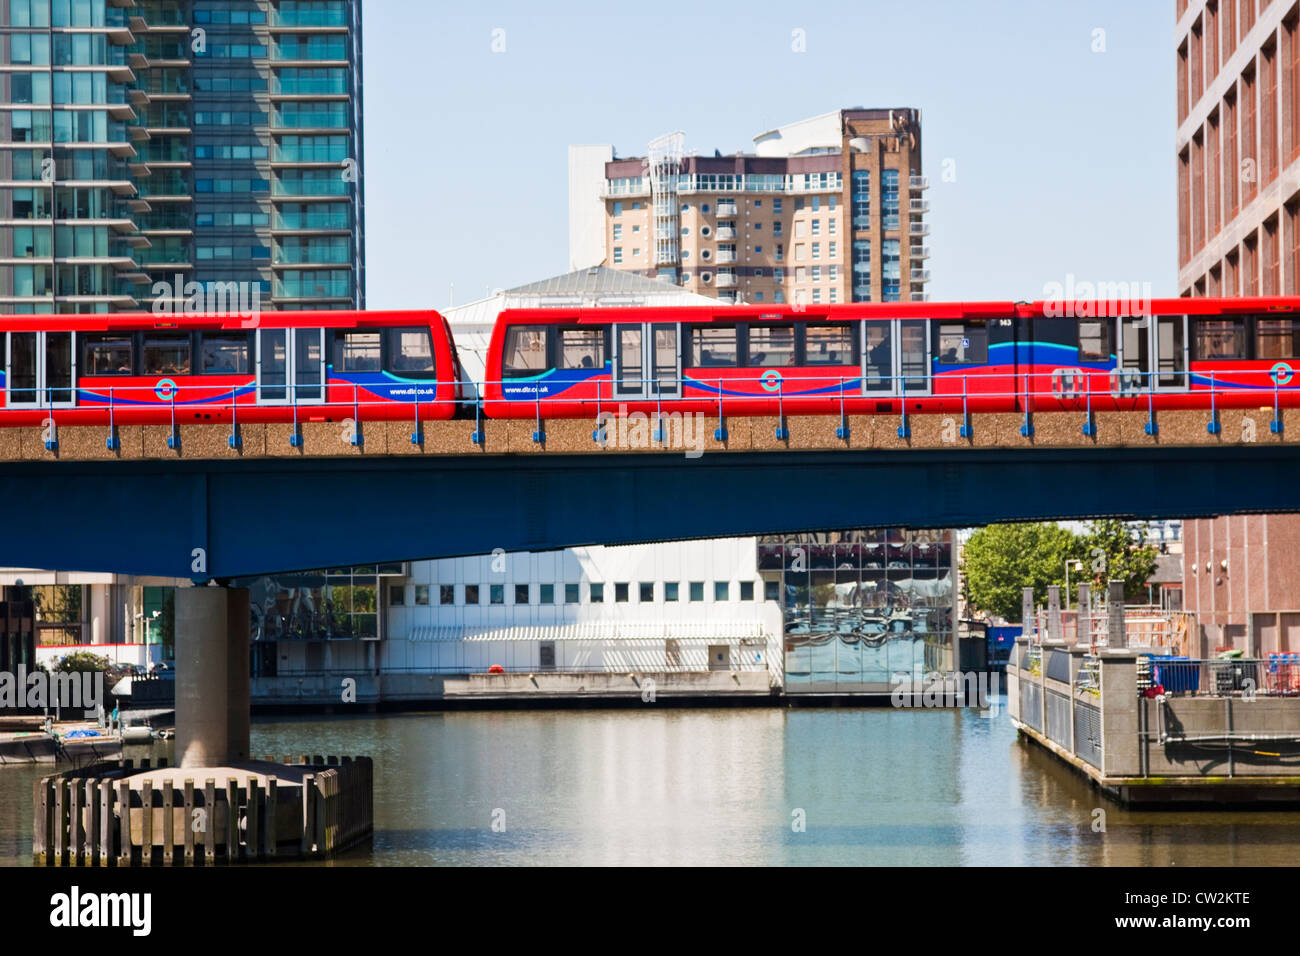 Canary Wharf-Docklands - Stock Image